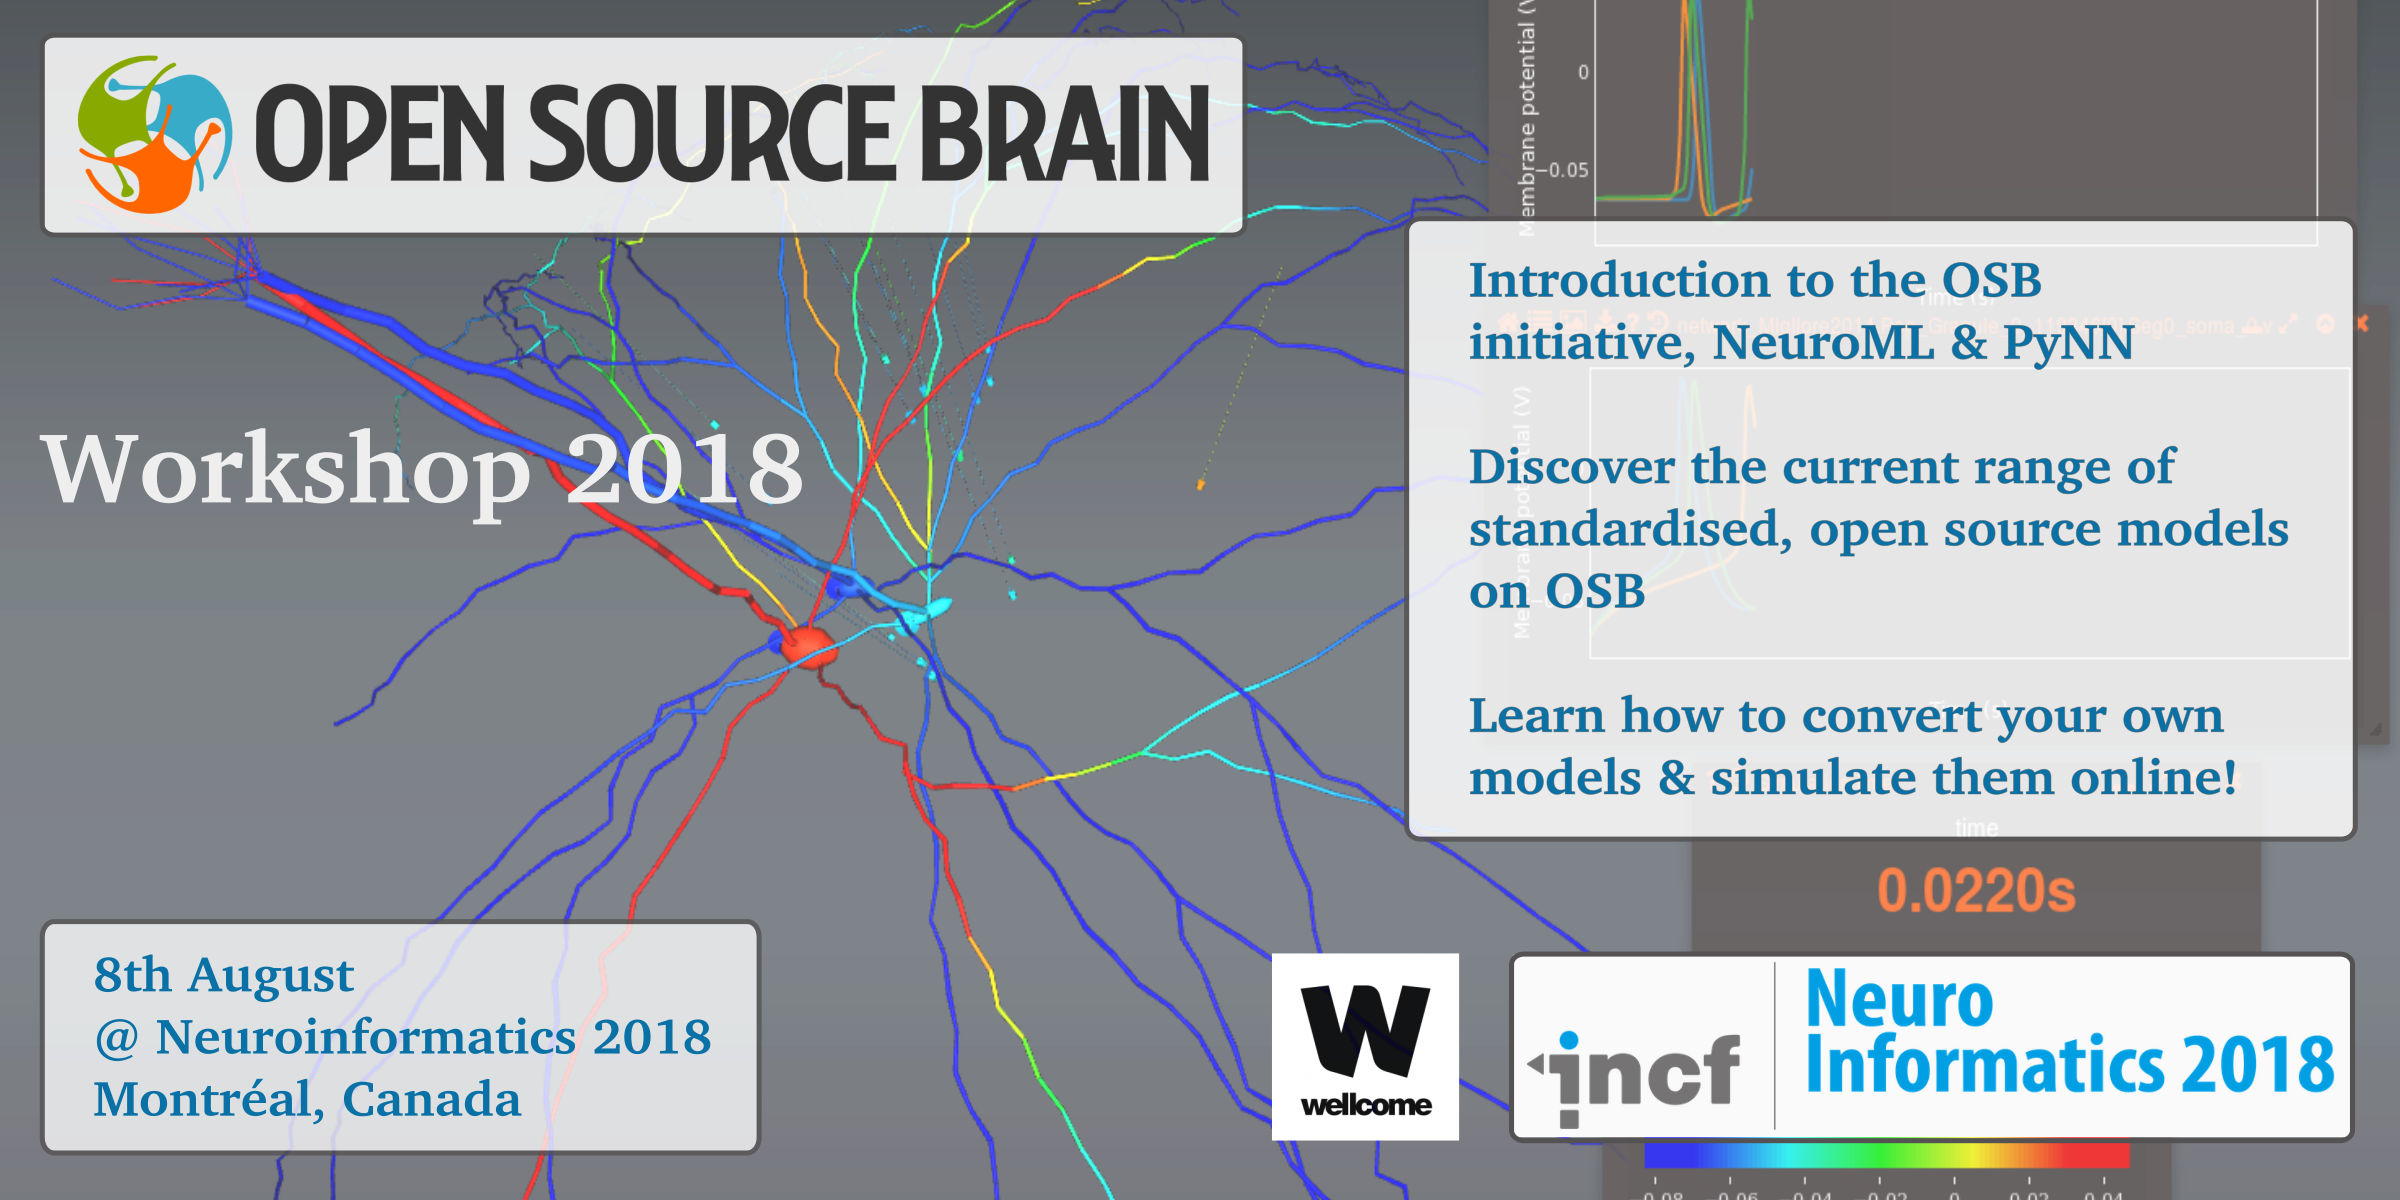 Open Source Brain